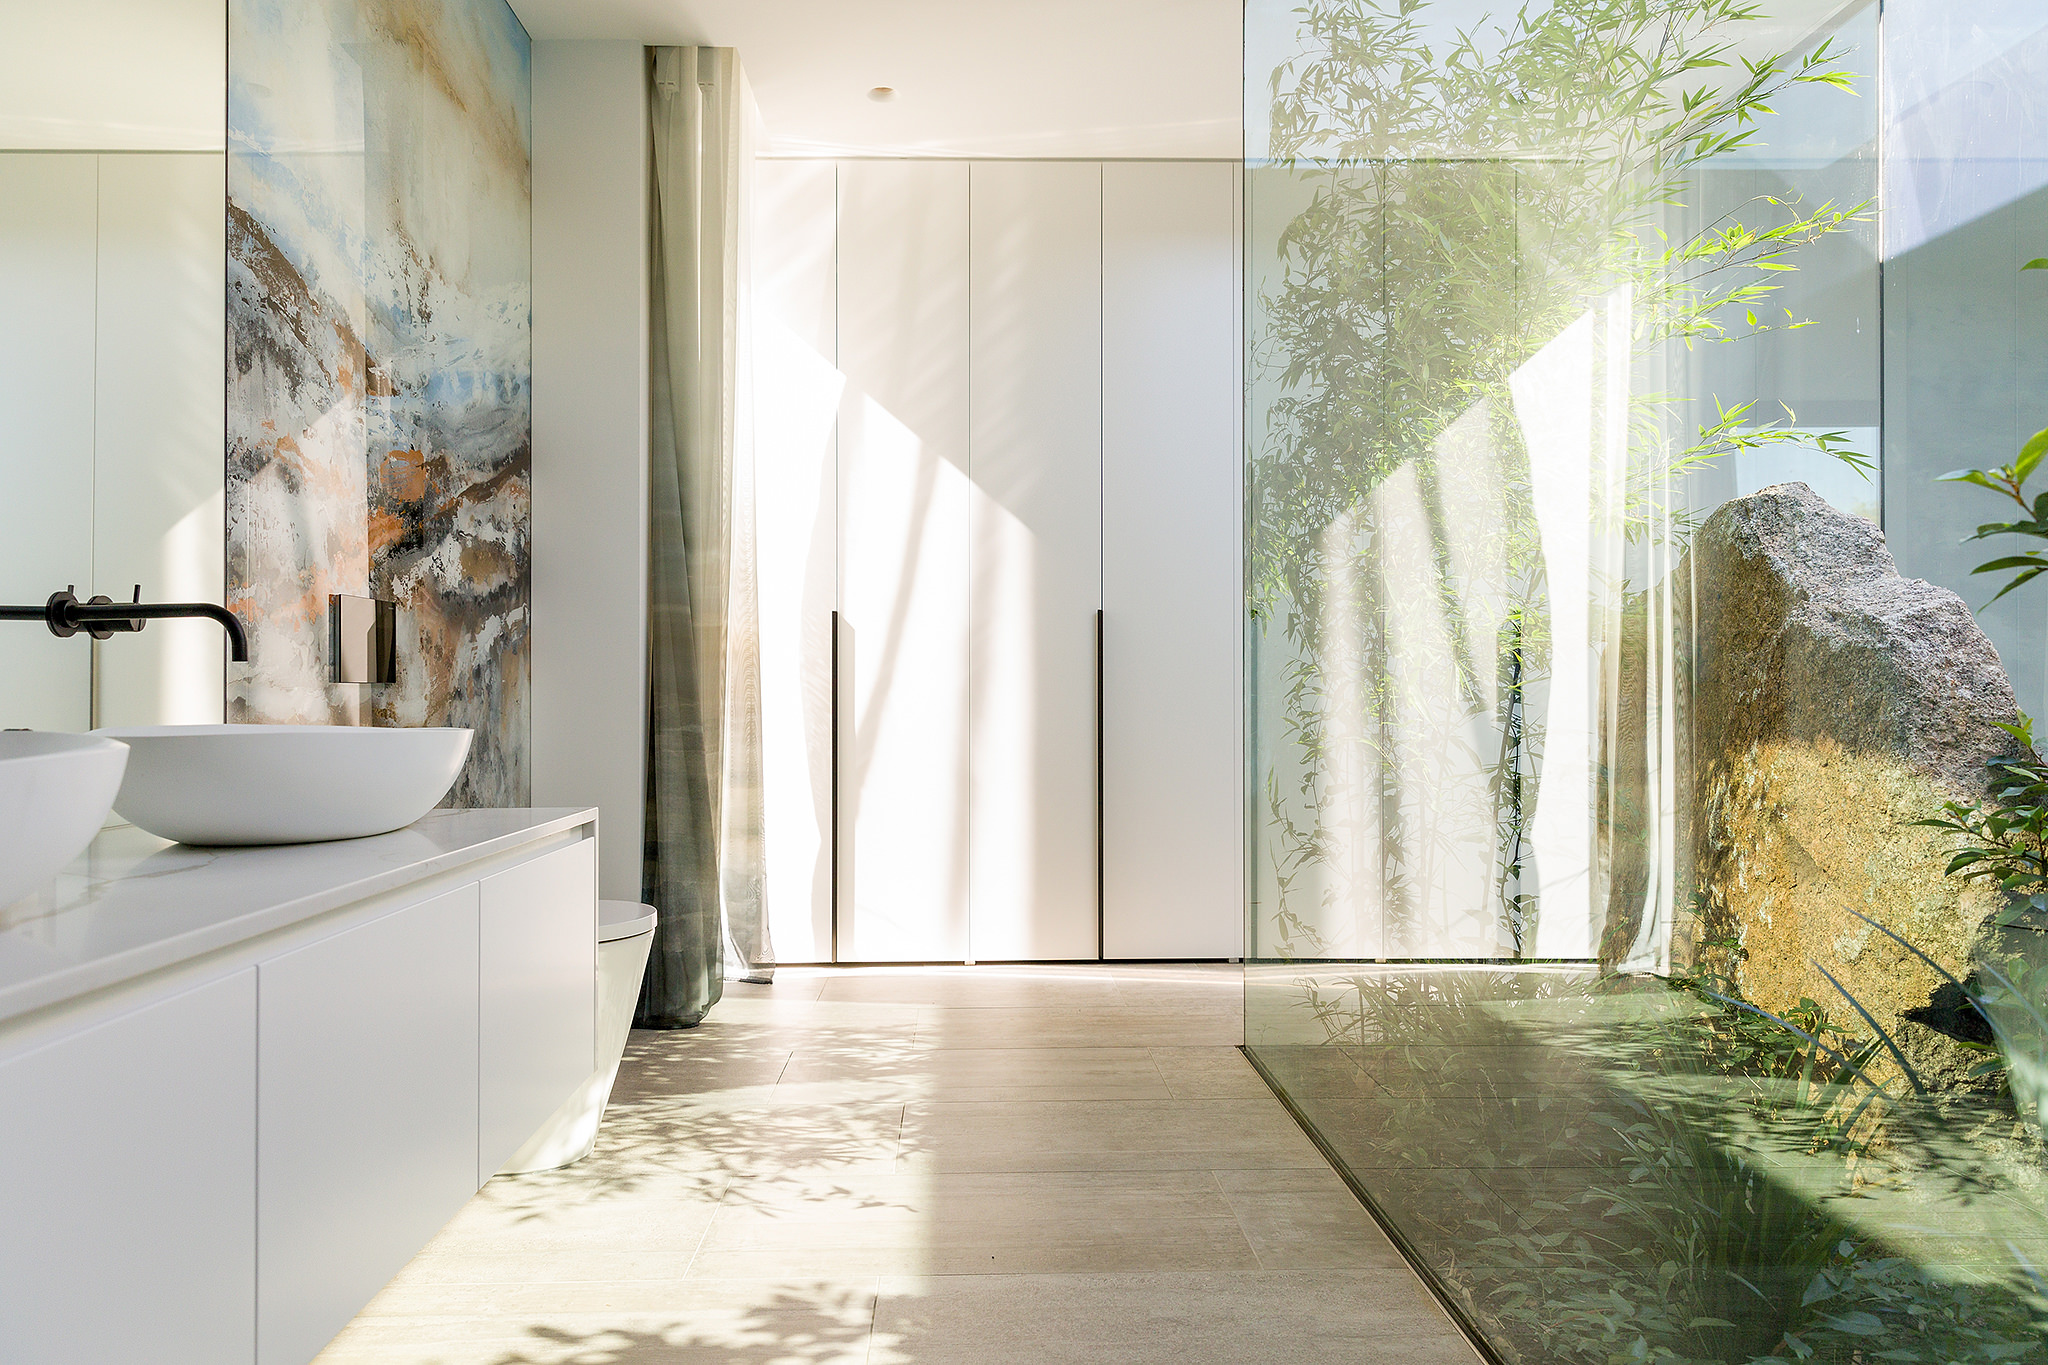 Interior design photography of a bathroom with internal garden